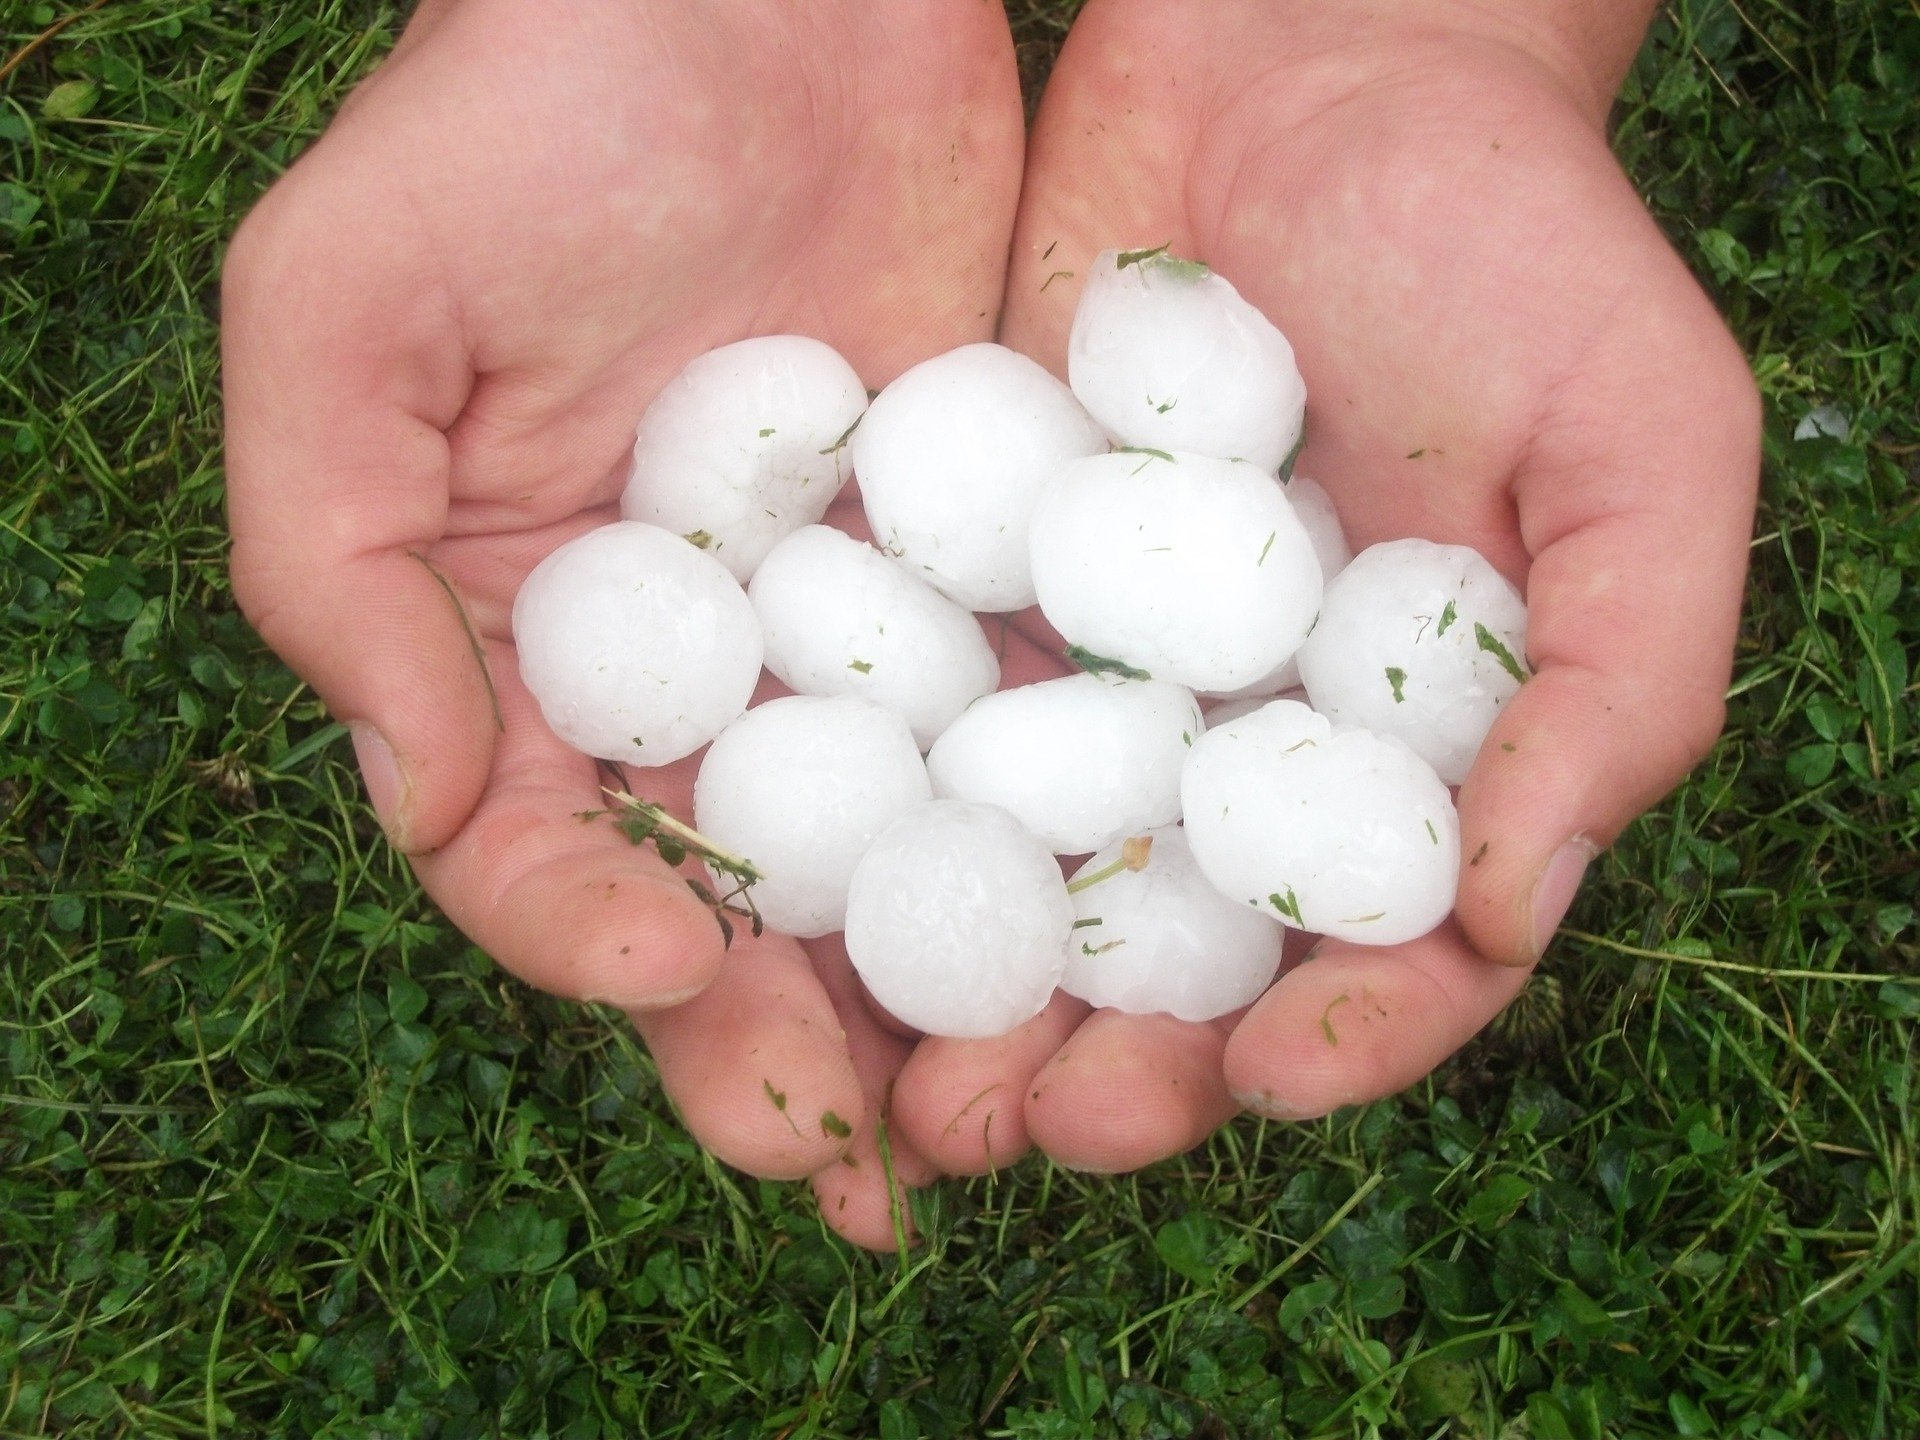 Pile of quarter-size hail stones in a persons hands